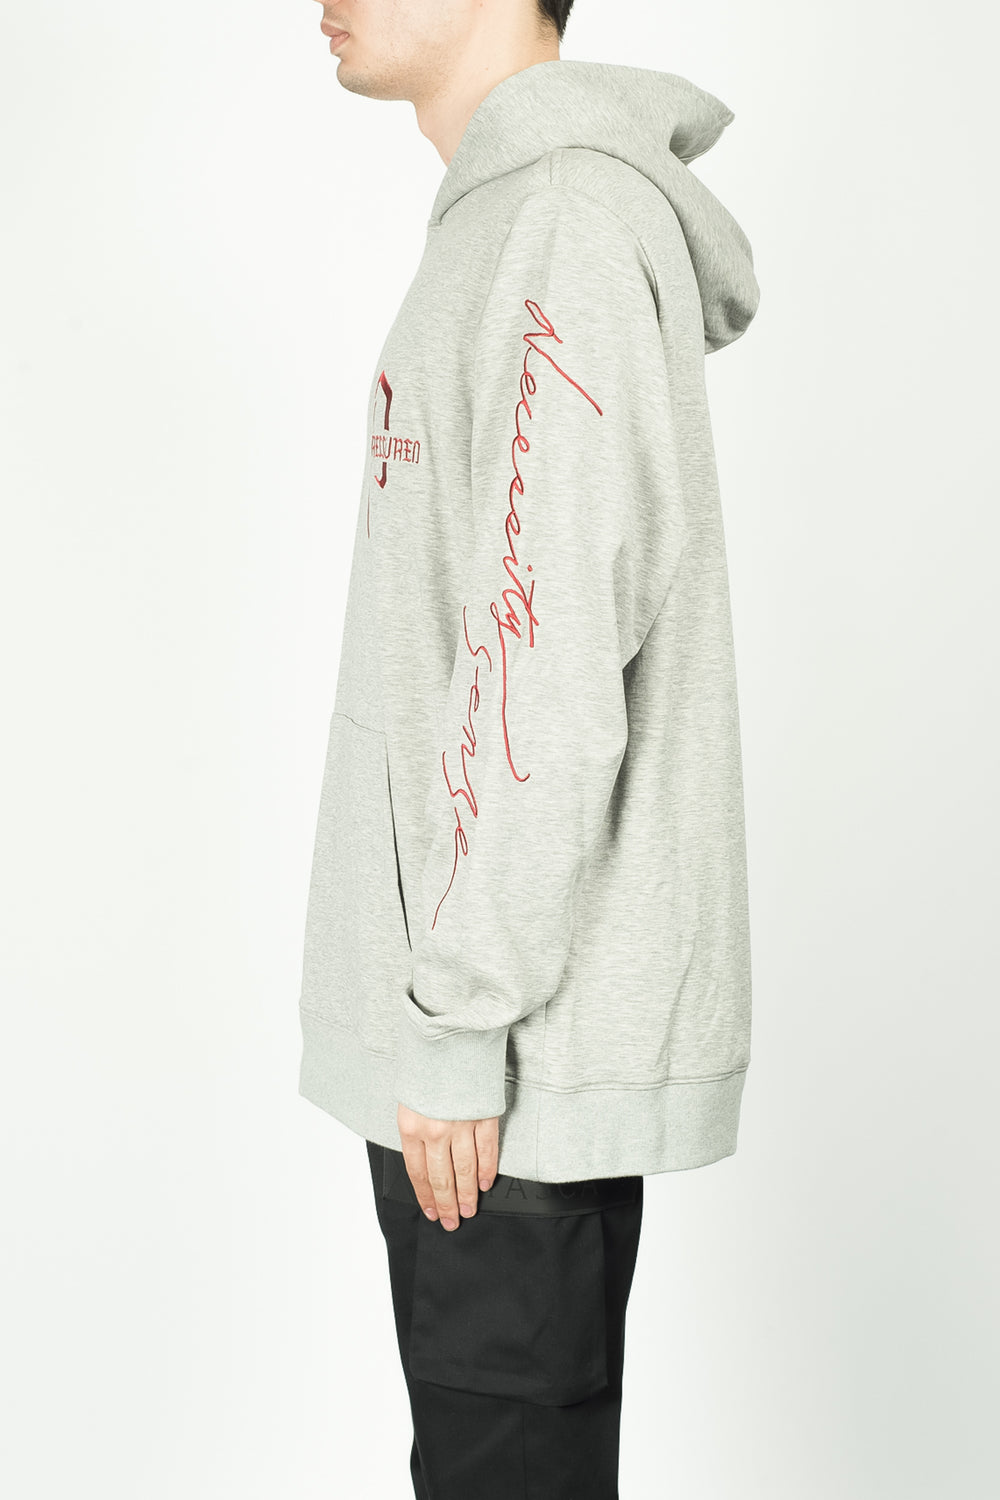 Necessity Sense Pressured Paradise Sense ID Hoodie In Grey